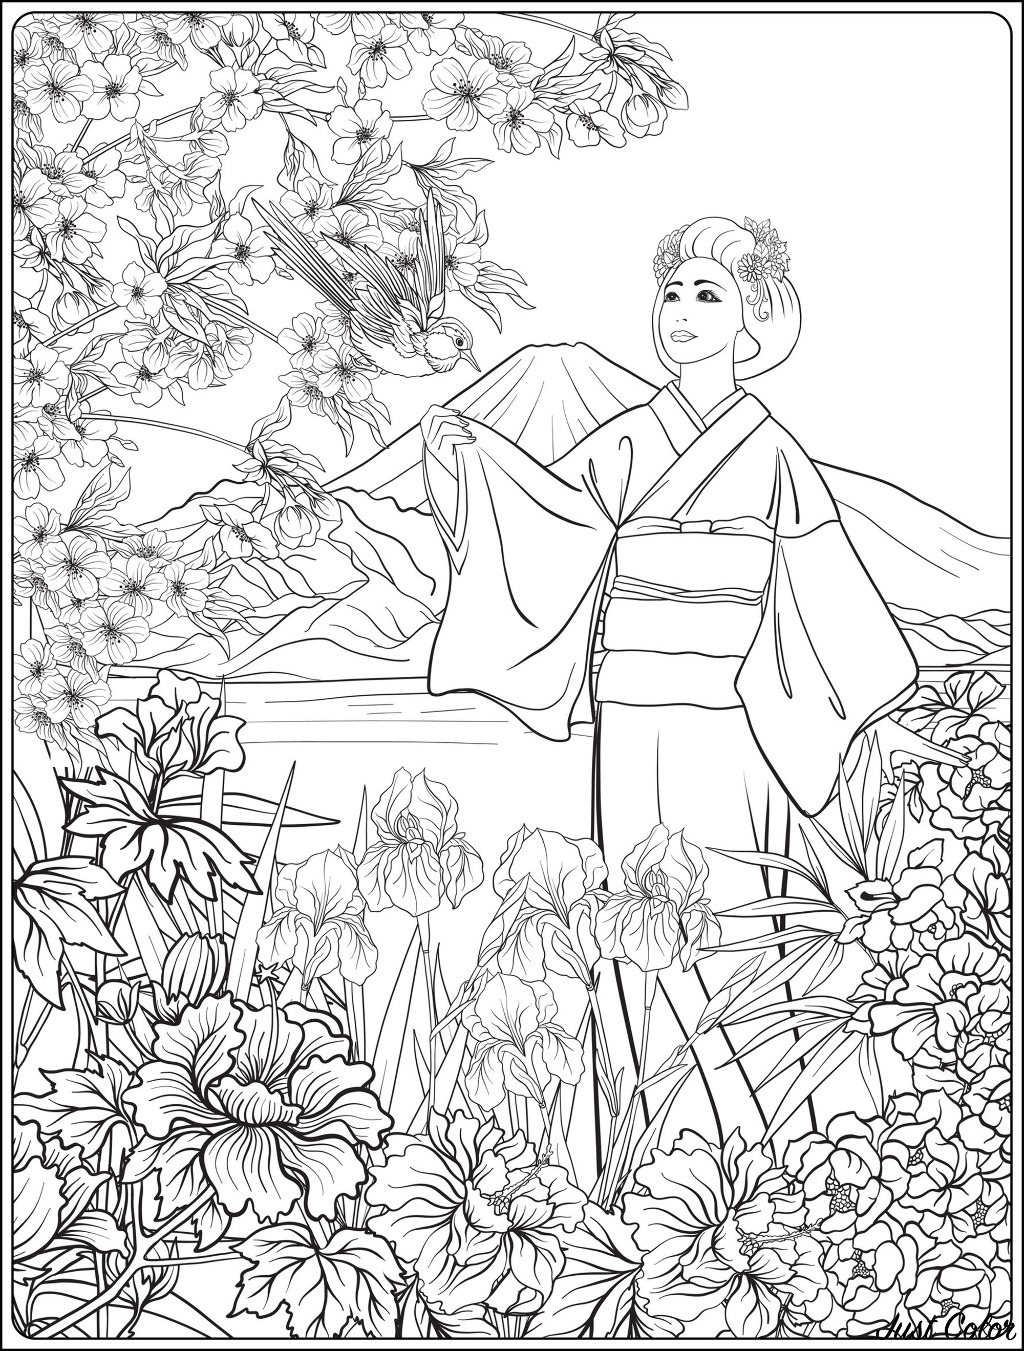 Coloring Pages Coloring Book For Children And Adults Colouring Pictures  With Kimono Girl Antistress Freehand Sketch Drawing With Doodle And  Zentangle Elements Stock Illustration - Download Image Now - iStock | 1351x1024